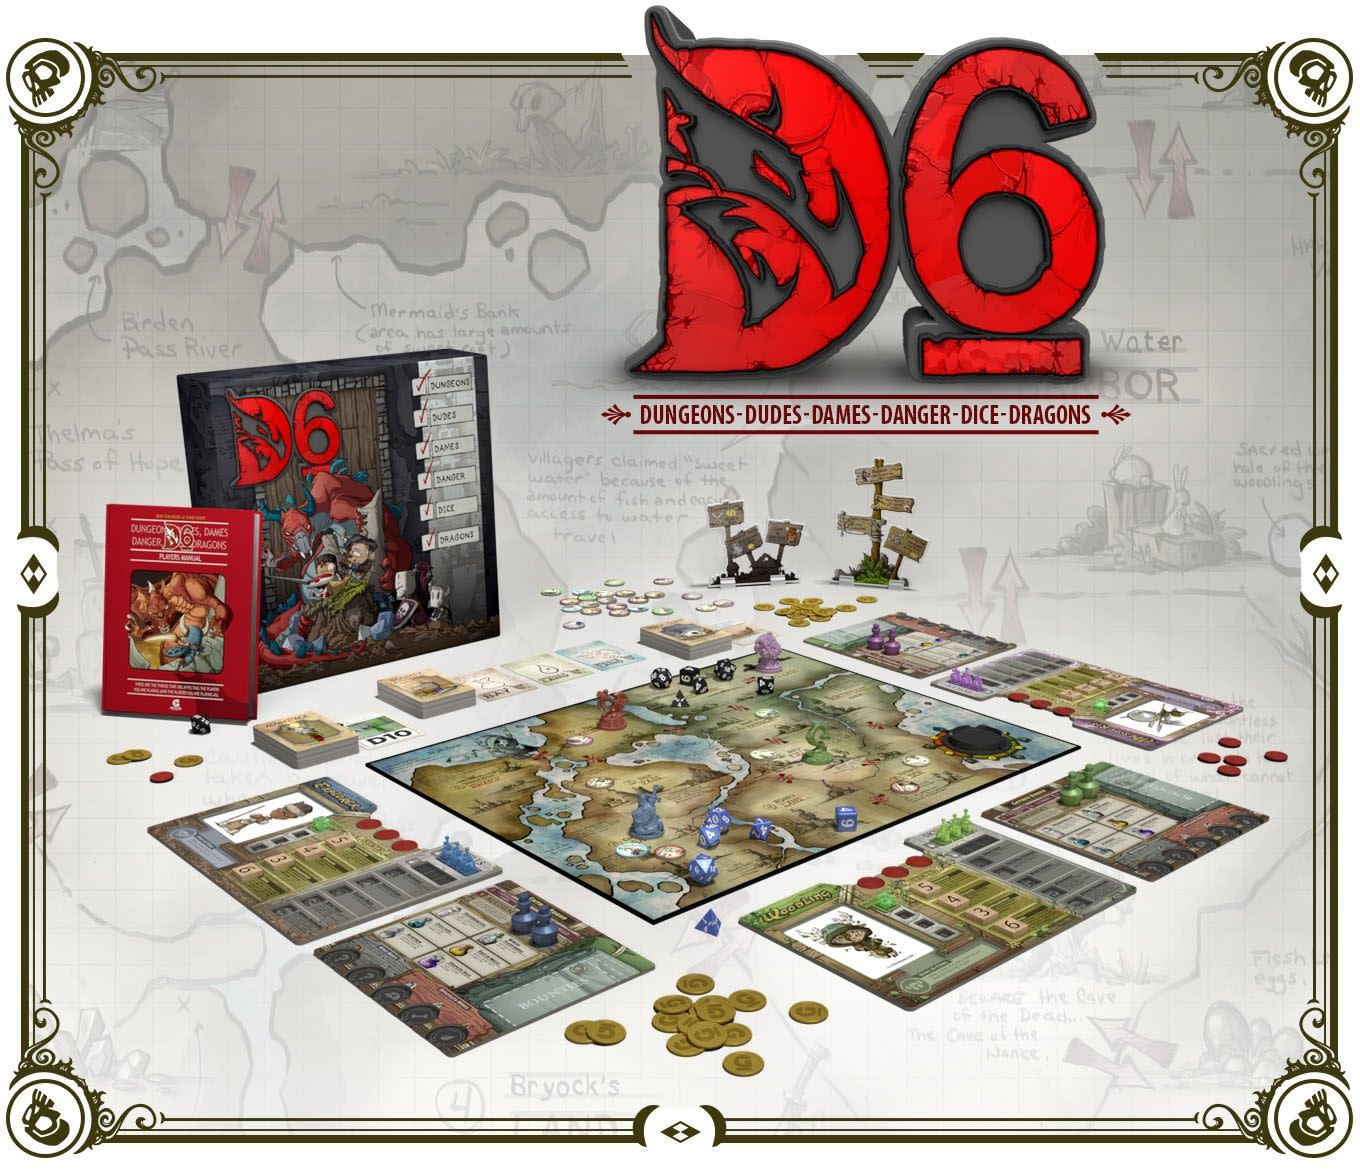 D6: Dungeons, Dudes, Dames, Danger, Dice and Dragons!